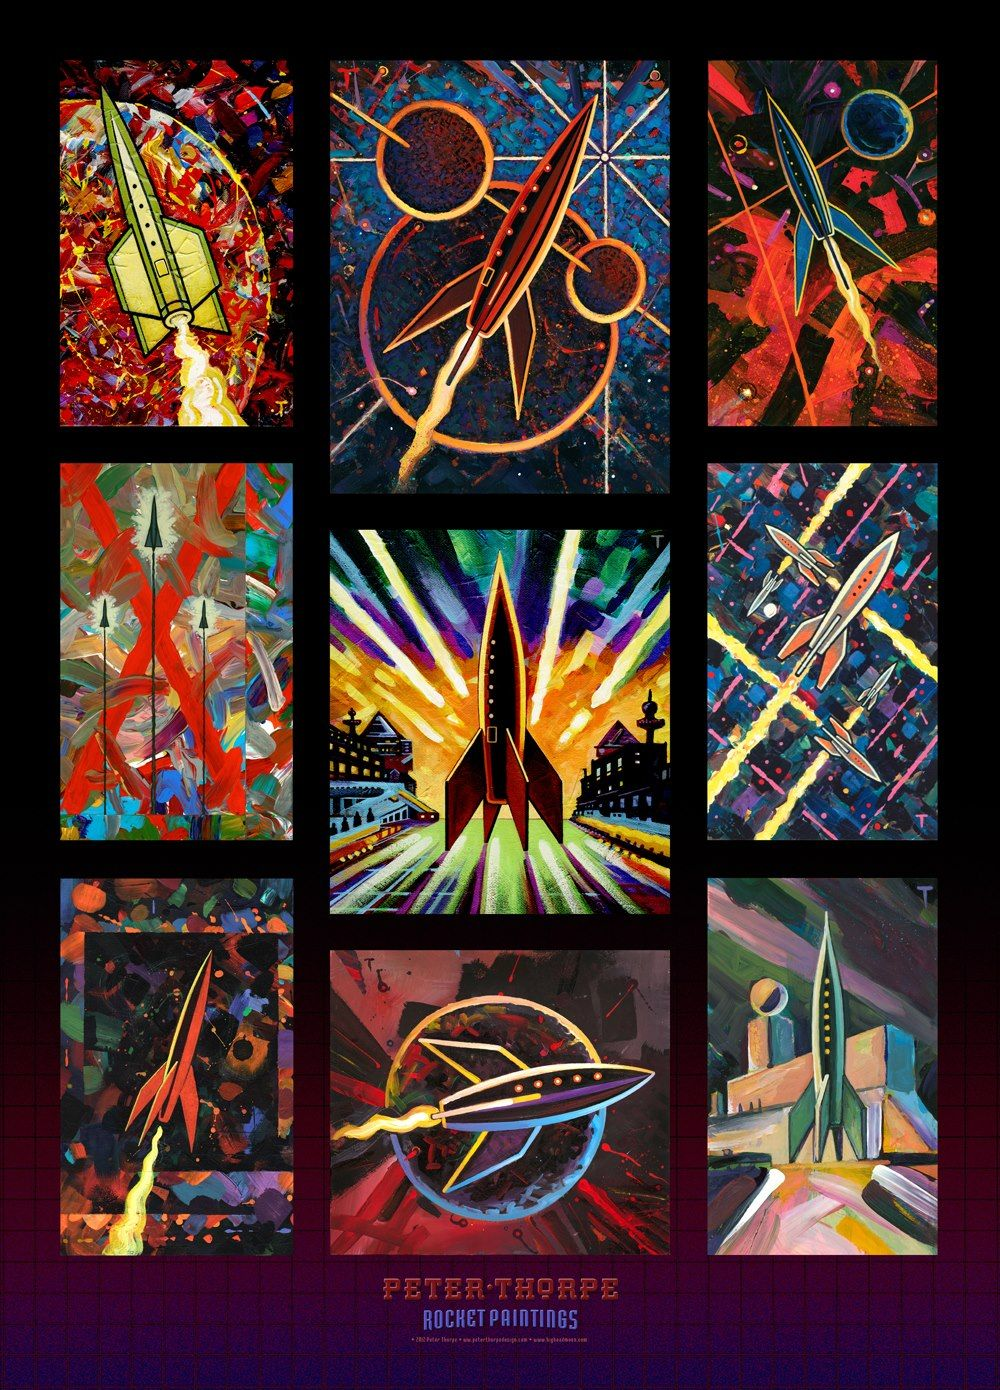 Zazzle poster design - Here Is A New Rocket Paintings Poster That I Ve Done For My Peter